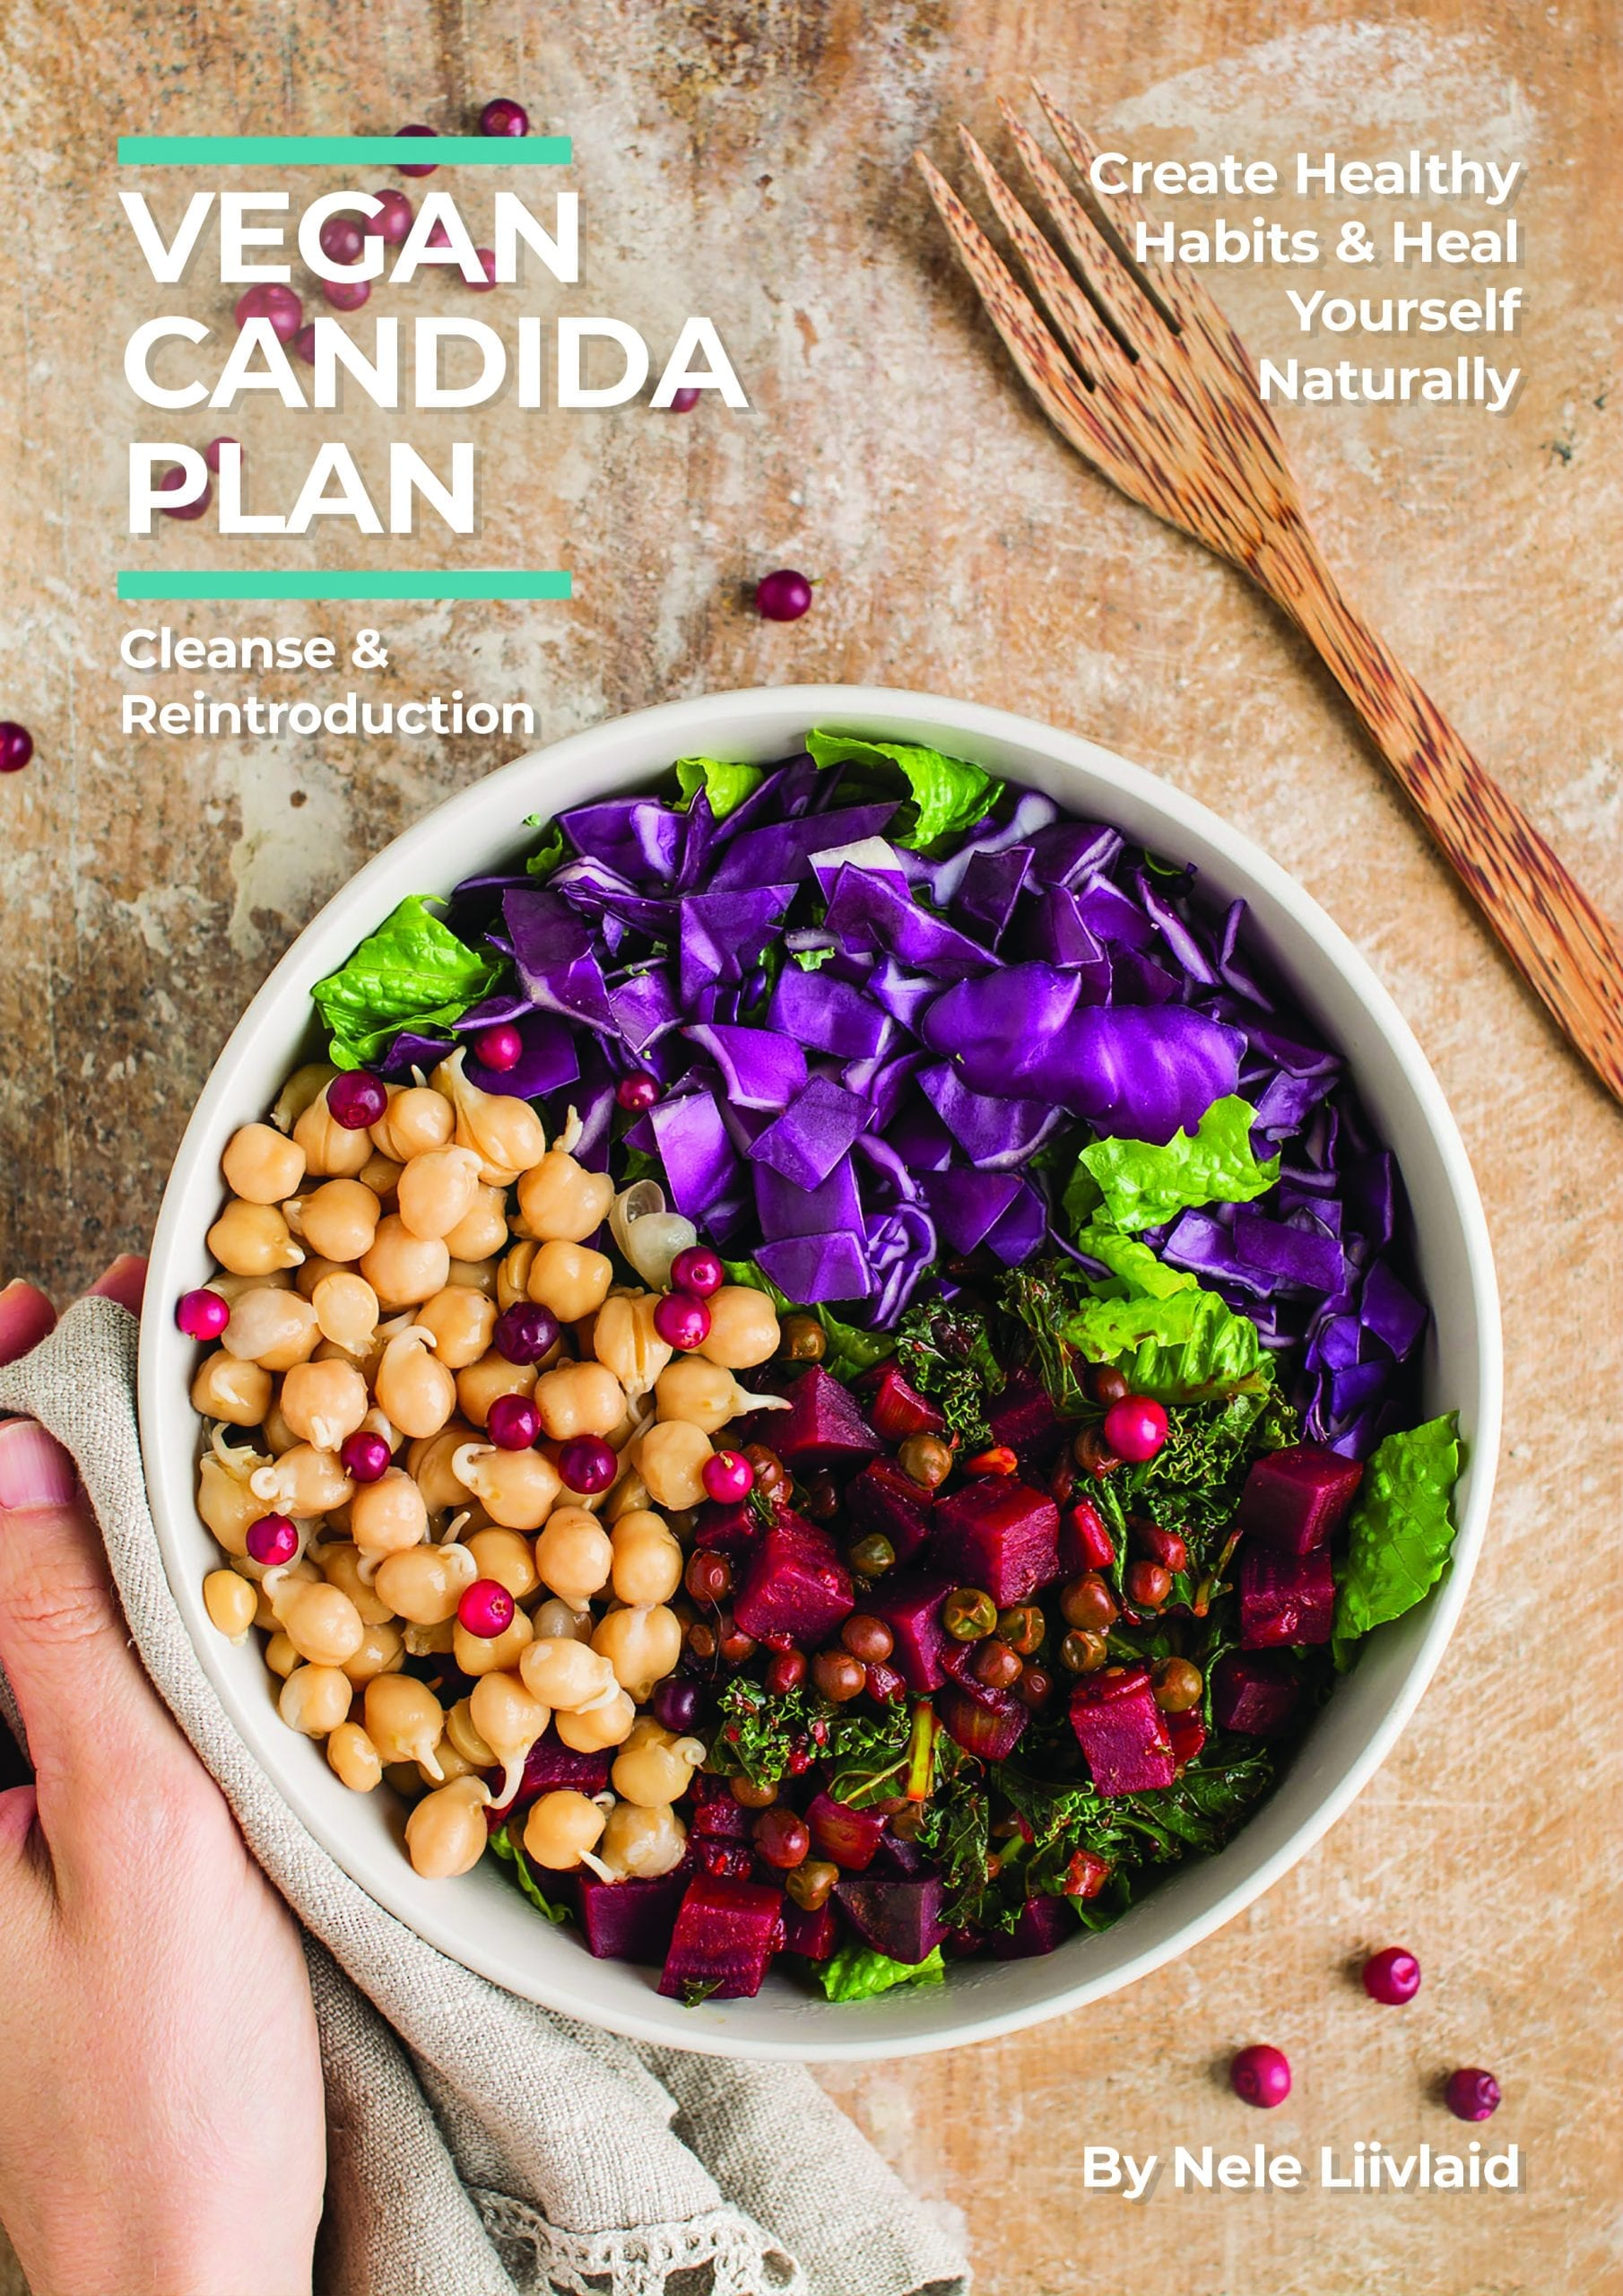 Vegan Candida Meal Plan